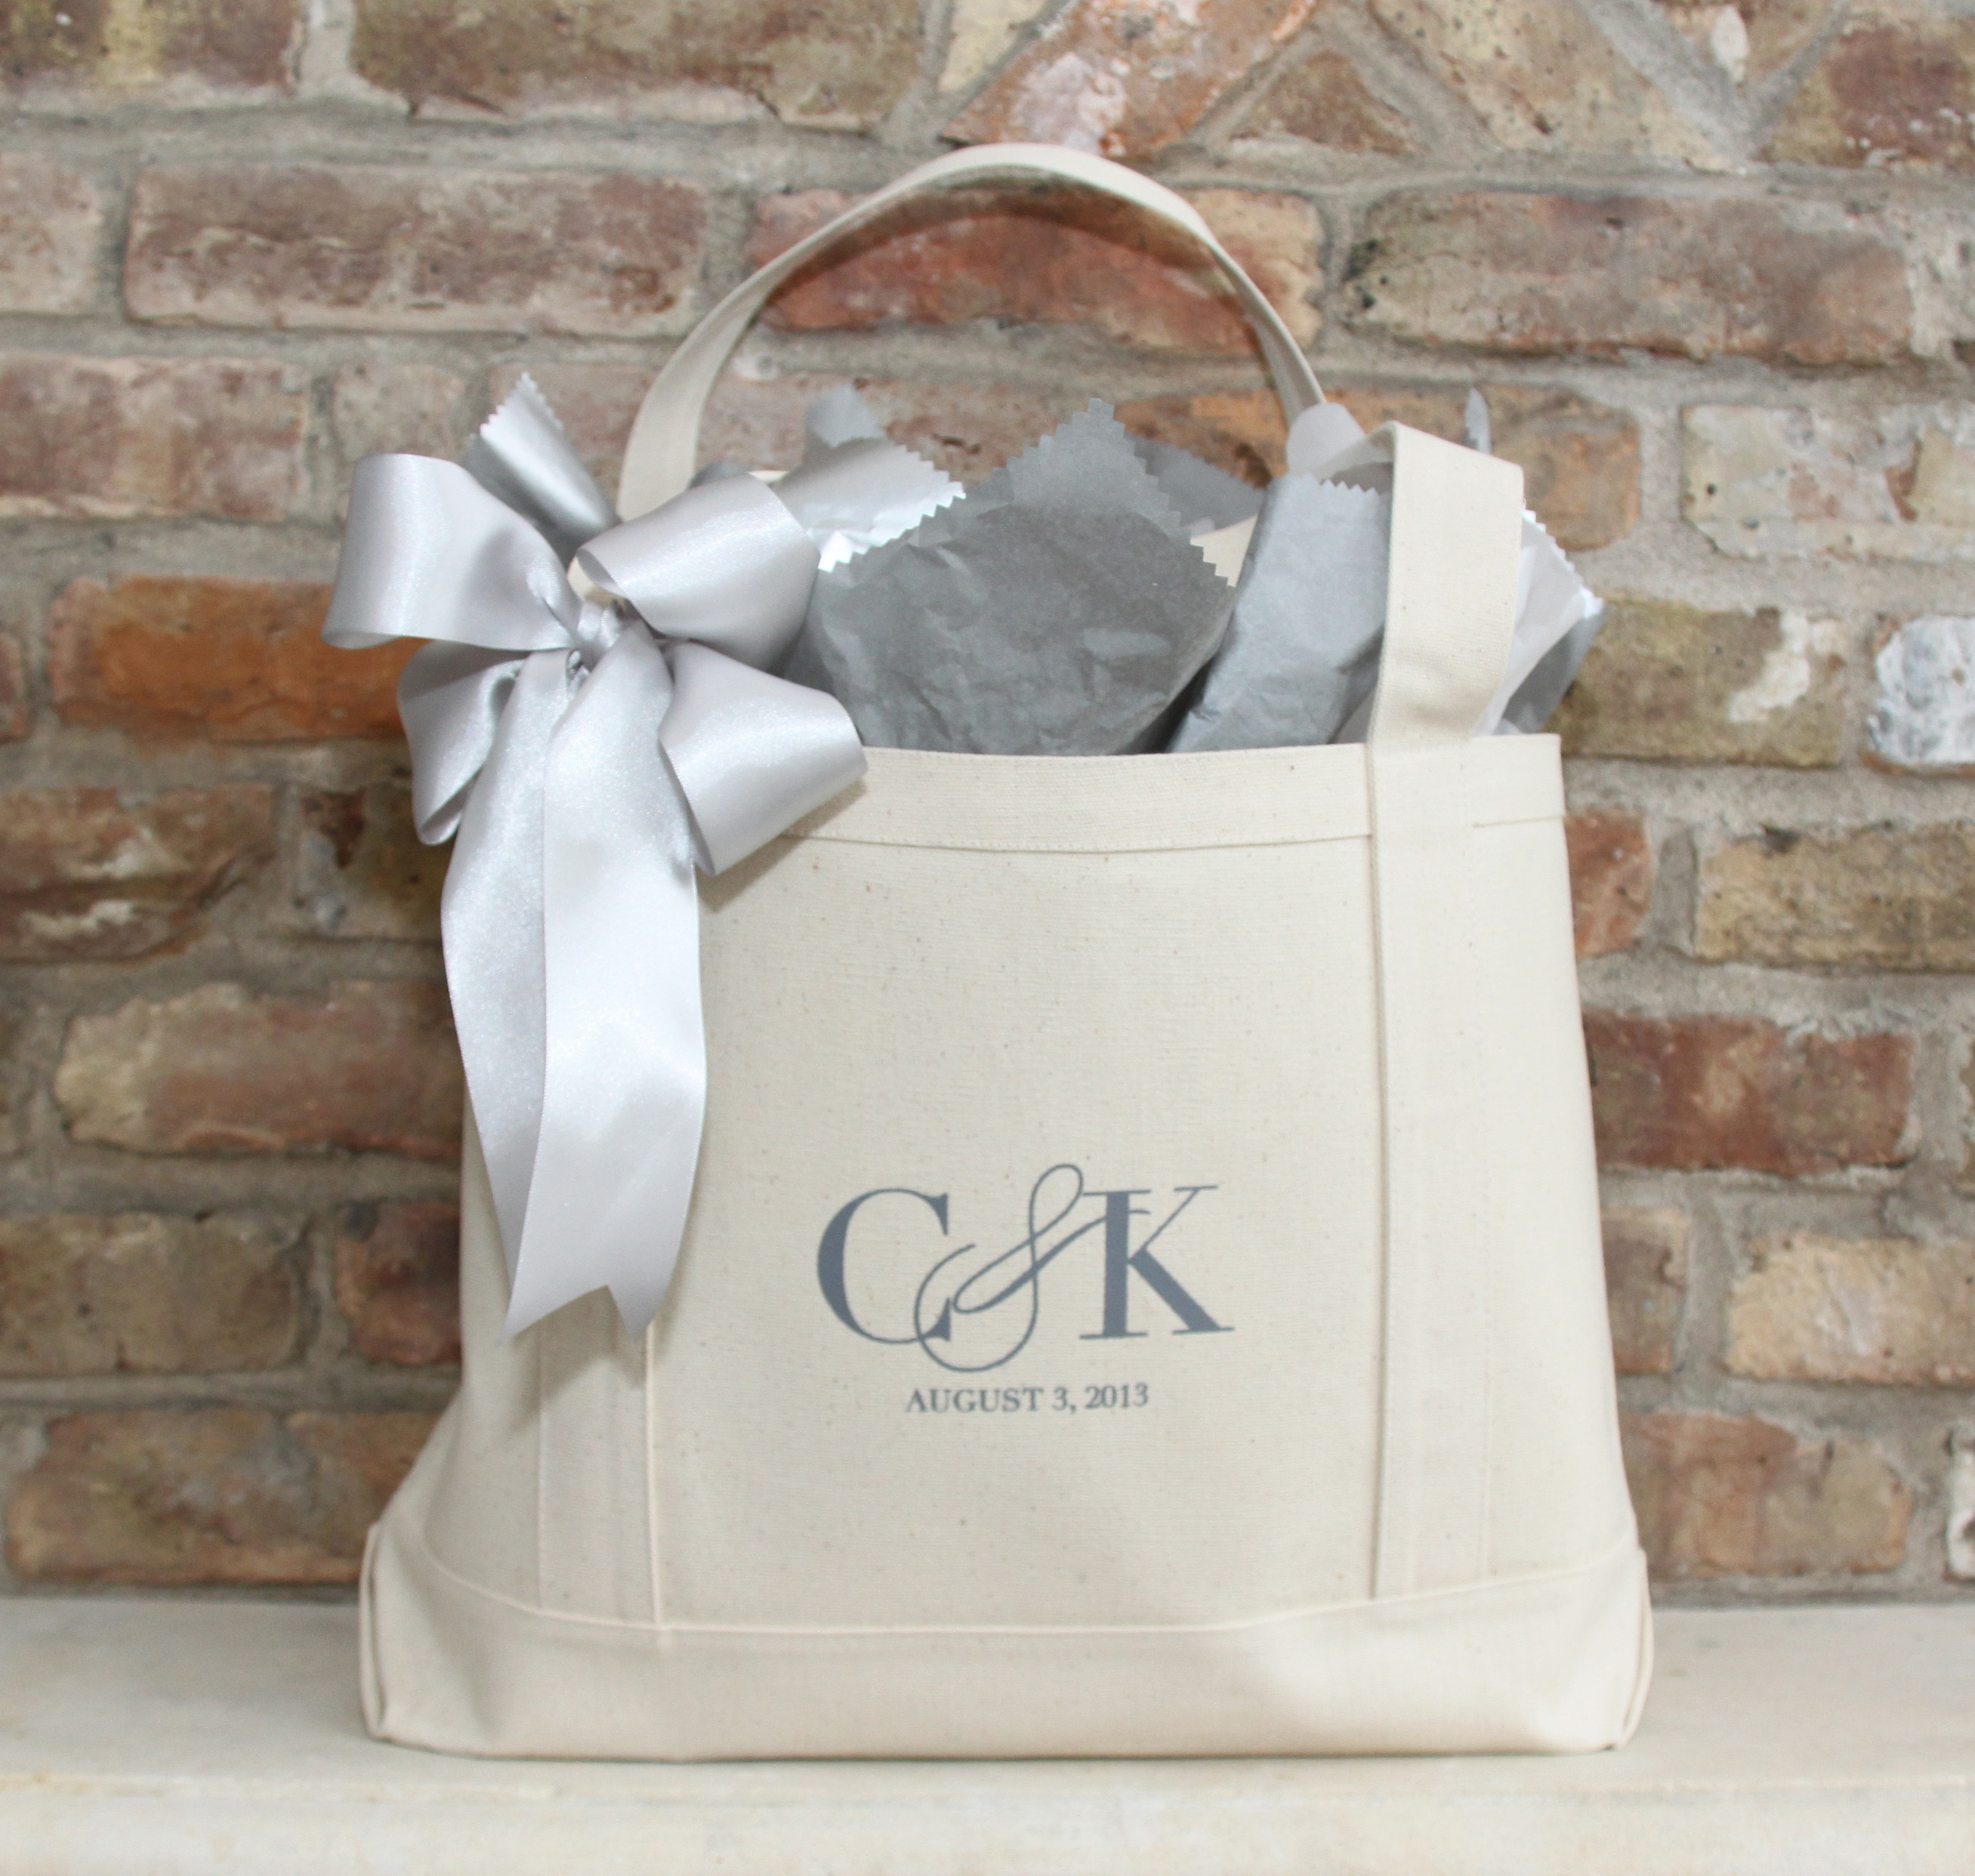 The Charm Studio's Custom Tote Bag